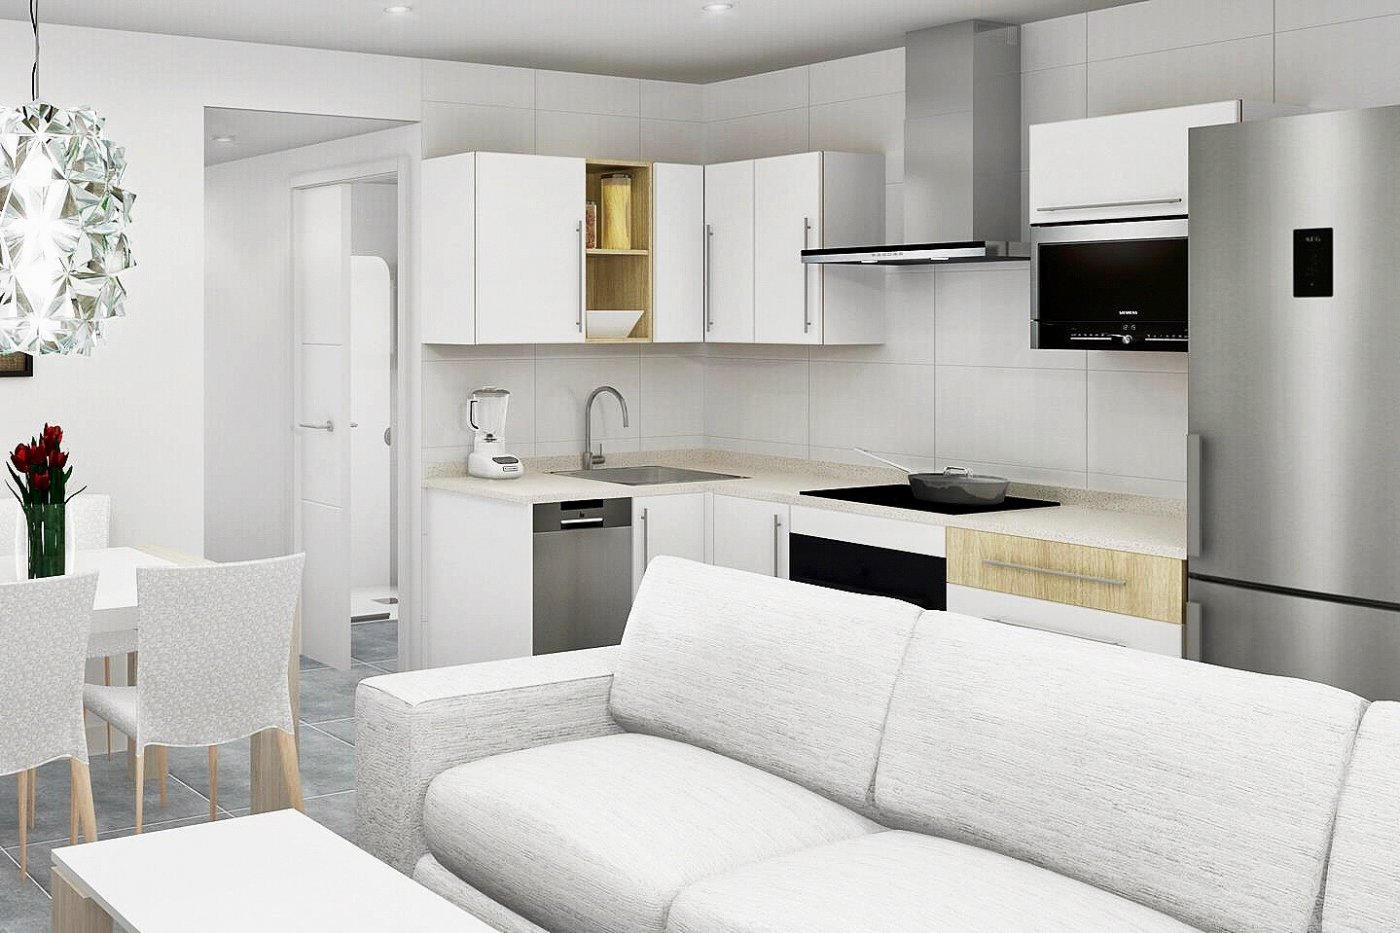 Gallery Image 2 of New build luxury apartments close the beaches, marina and centre of beautiful Lo Pagan